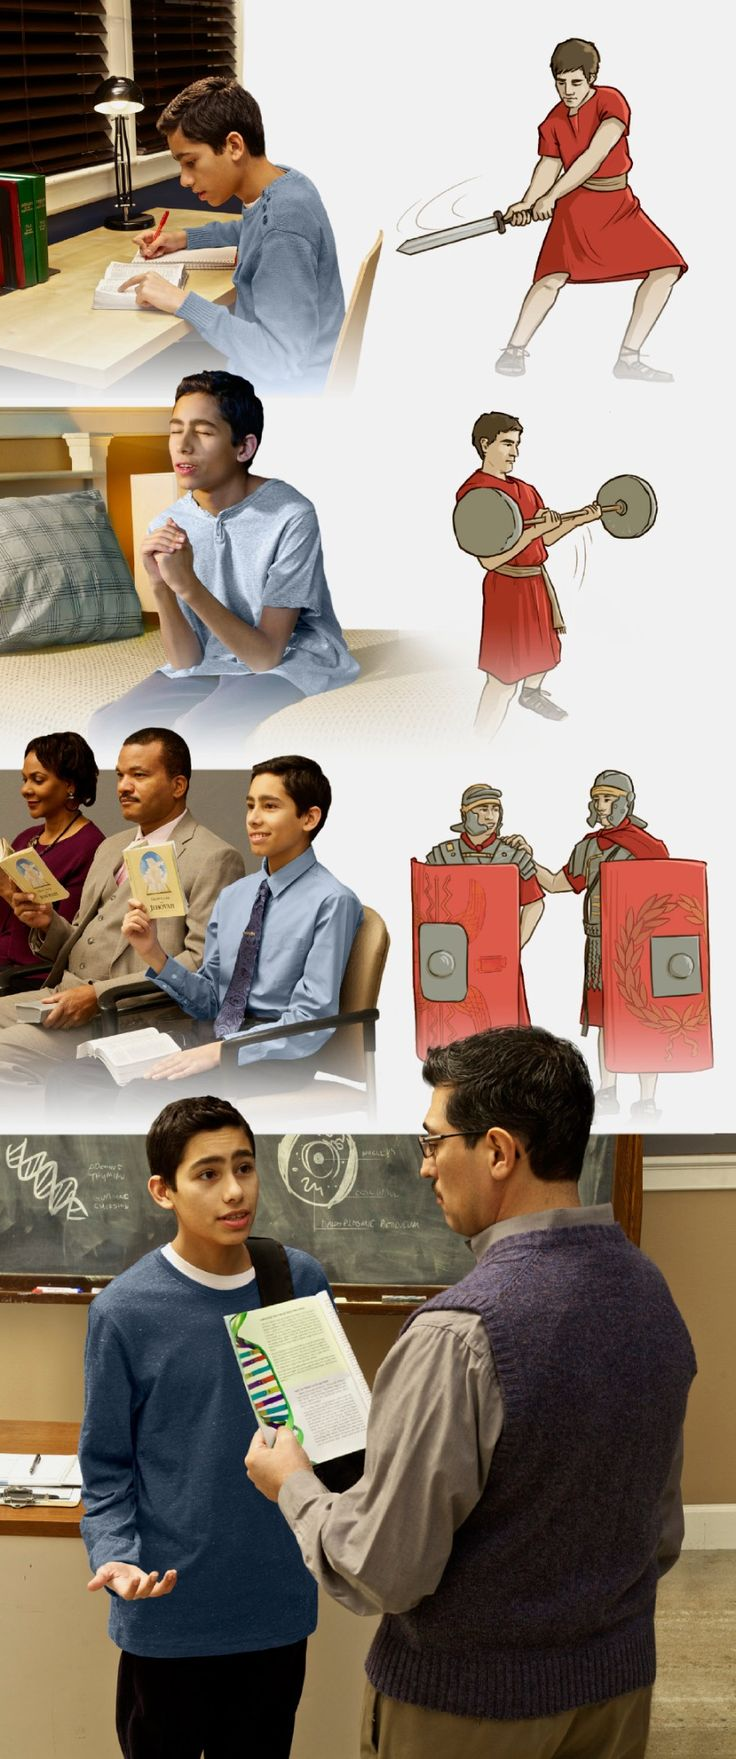 Scenes of a young brother who trains spiritually are contrasted with depictions of a soldier who goes through drills